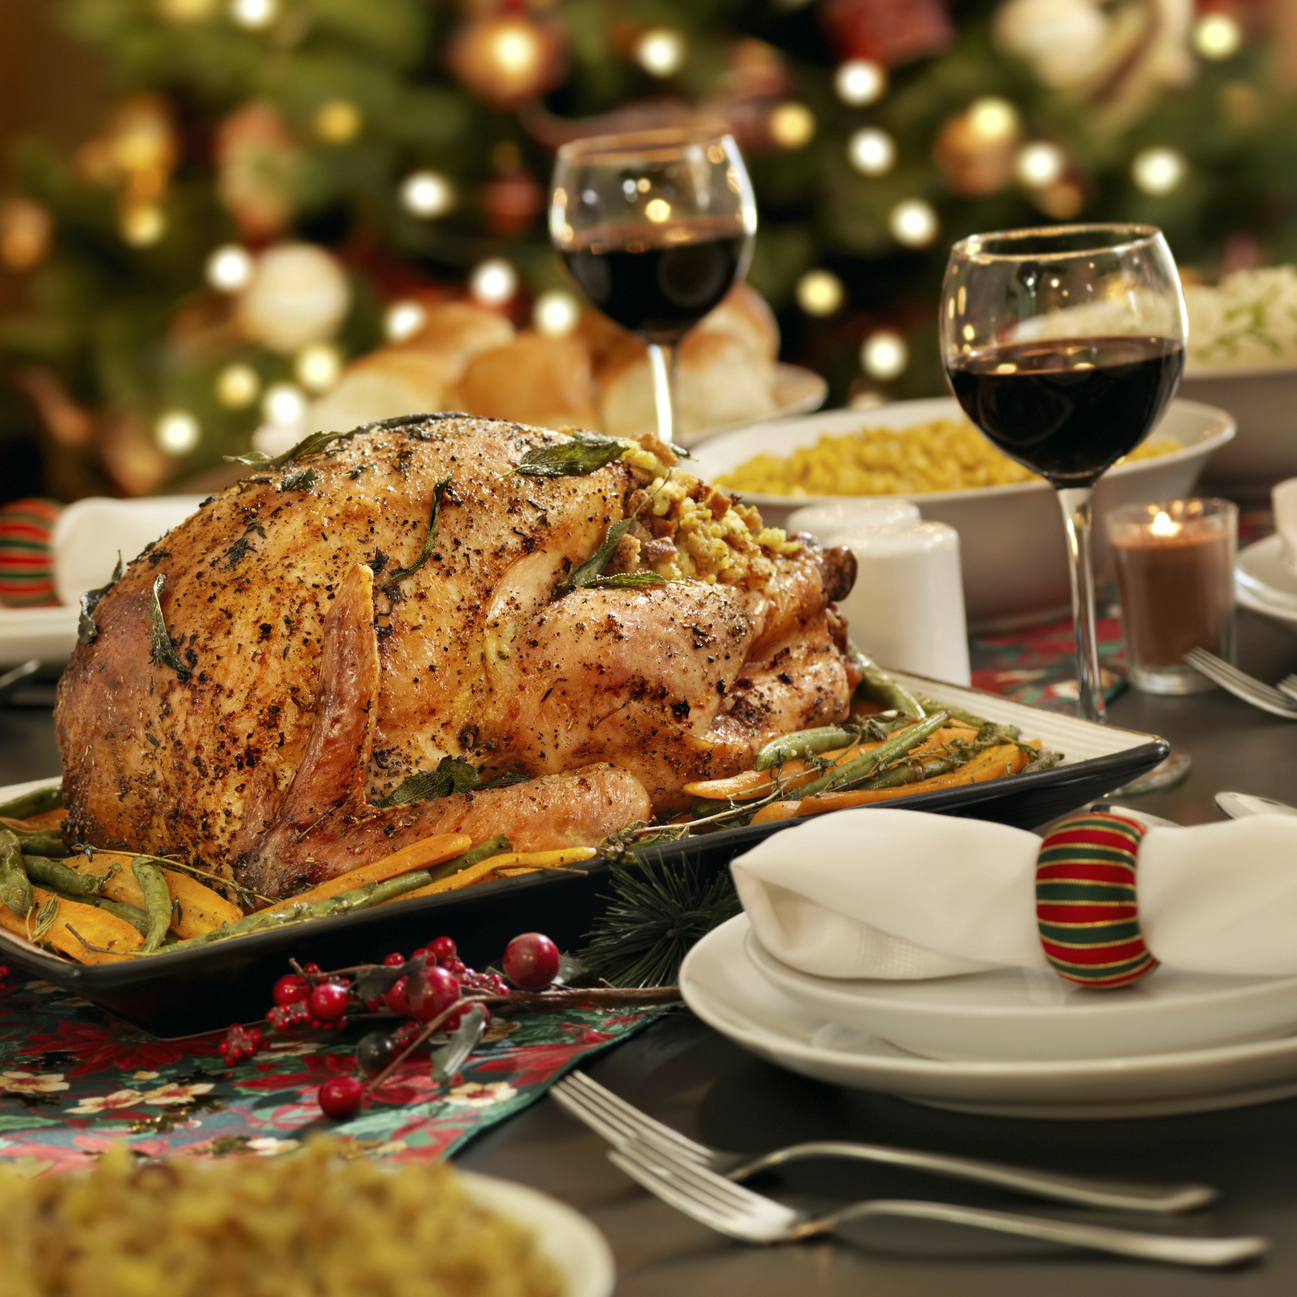 turkey on a Christmas table with red wine, corn, mashed potatoes